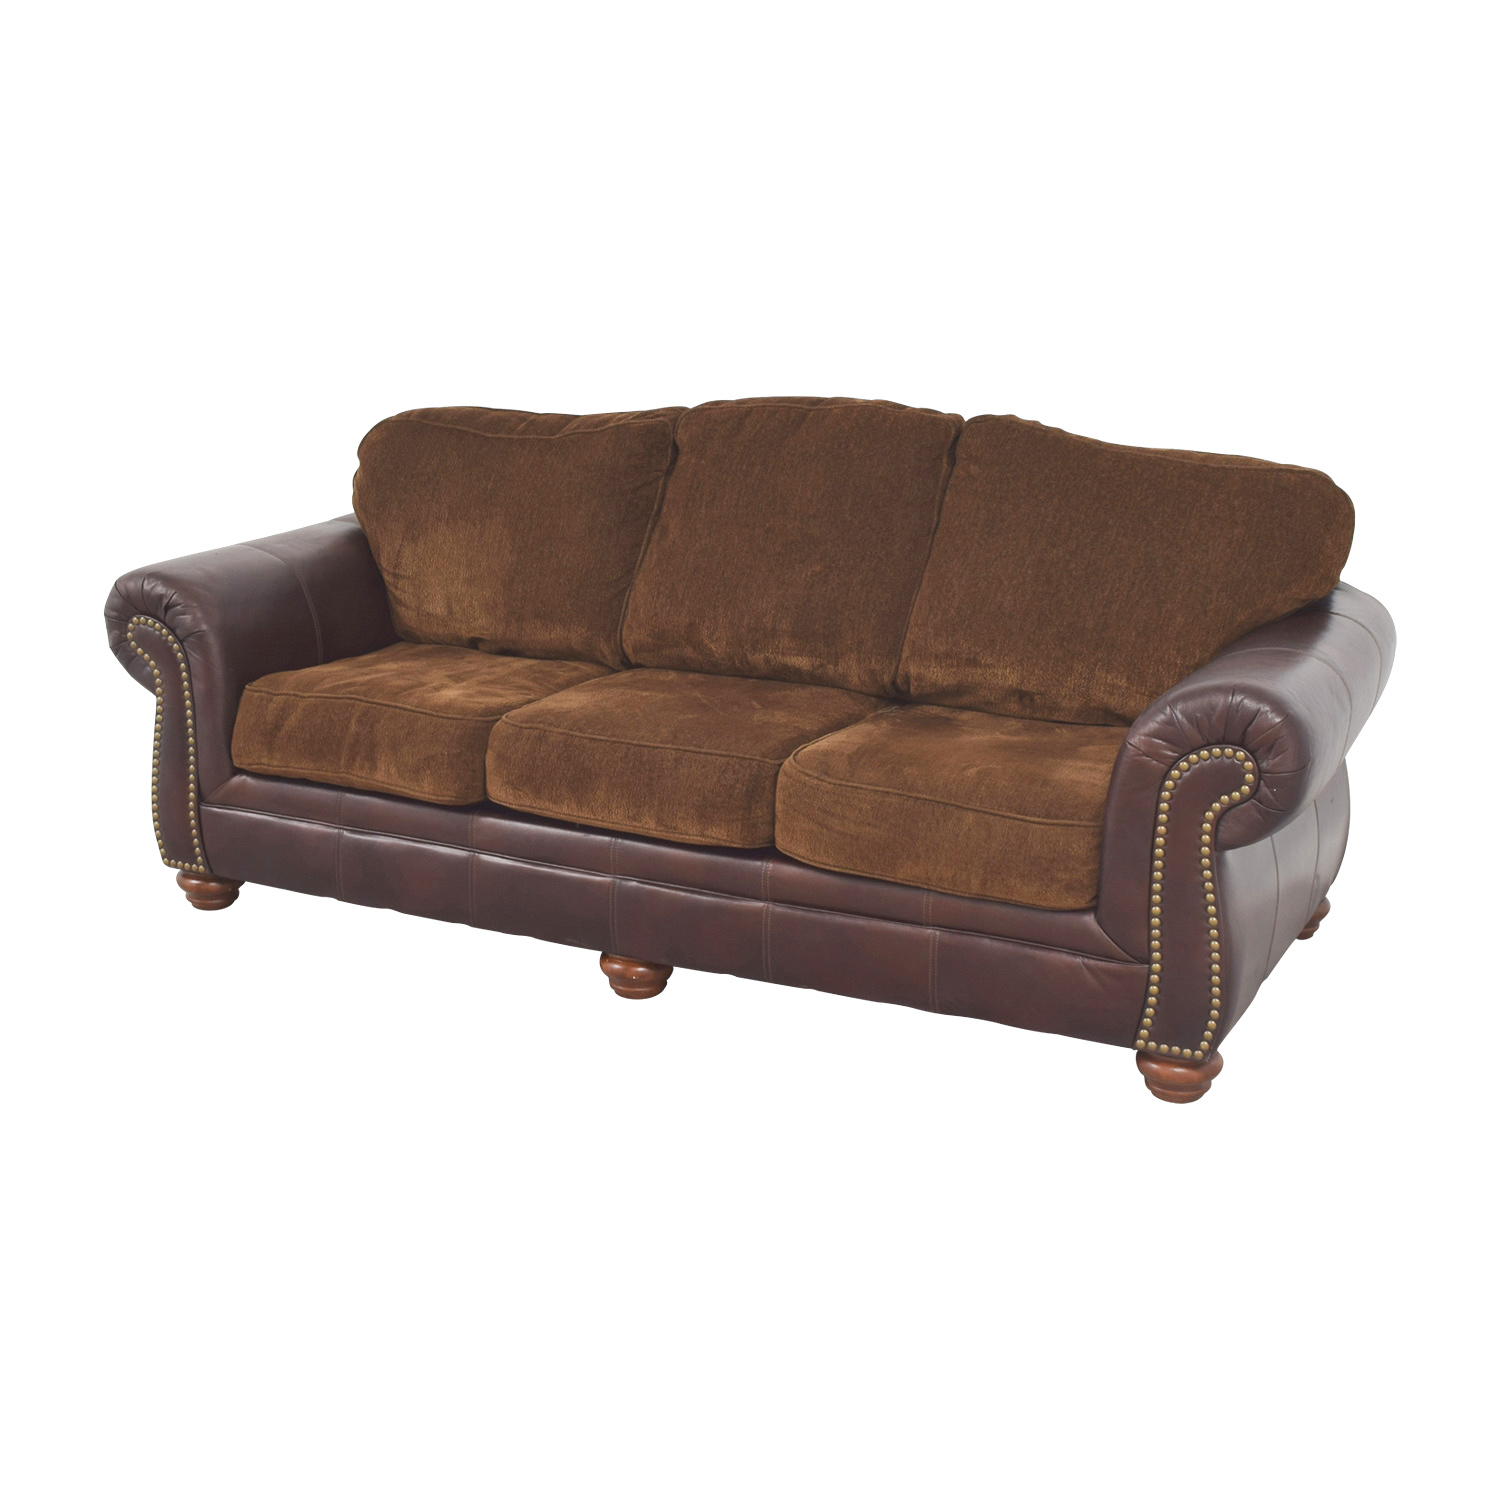 Simmons Sofa with Leather Arms sale